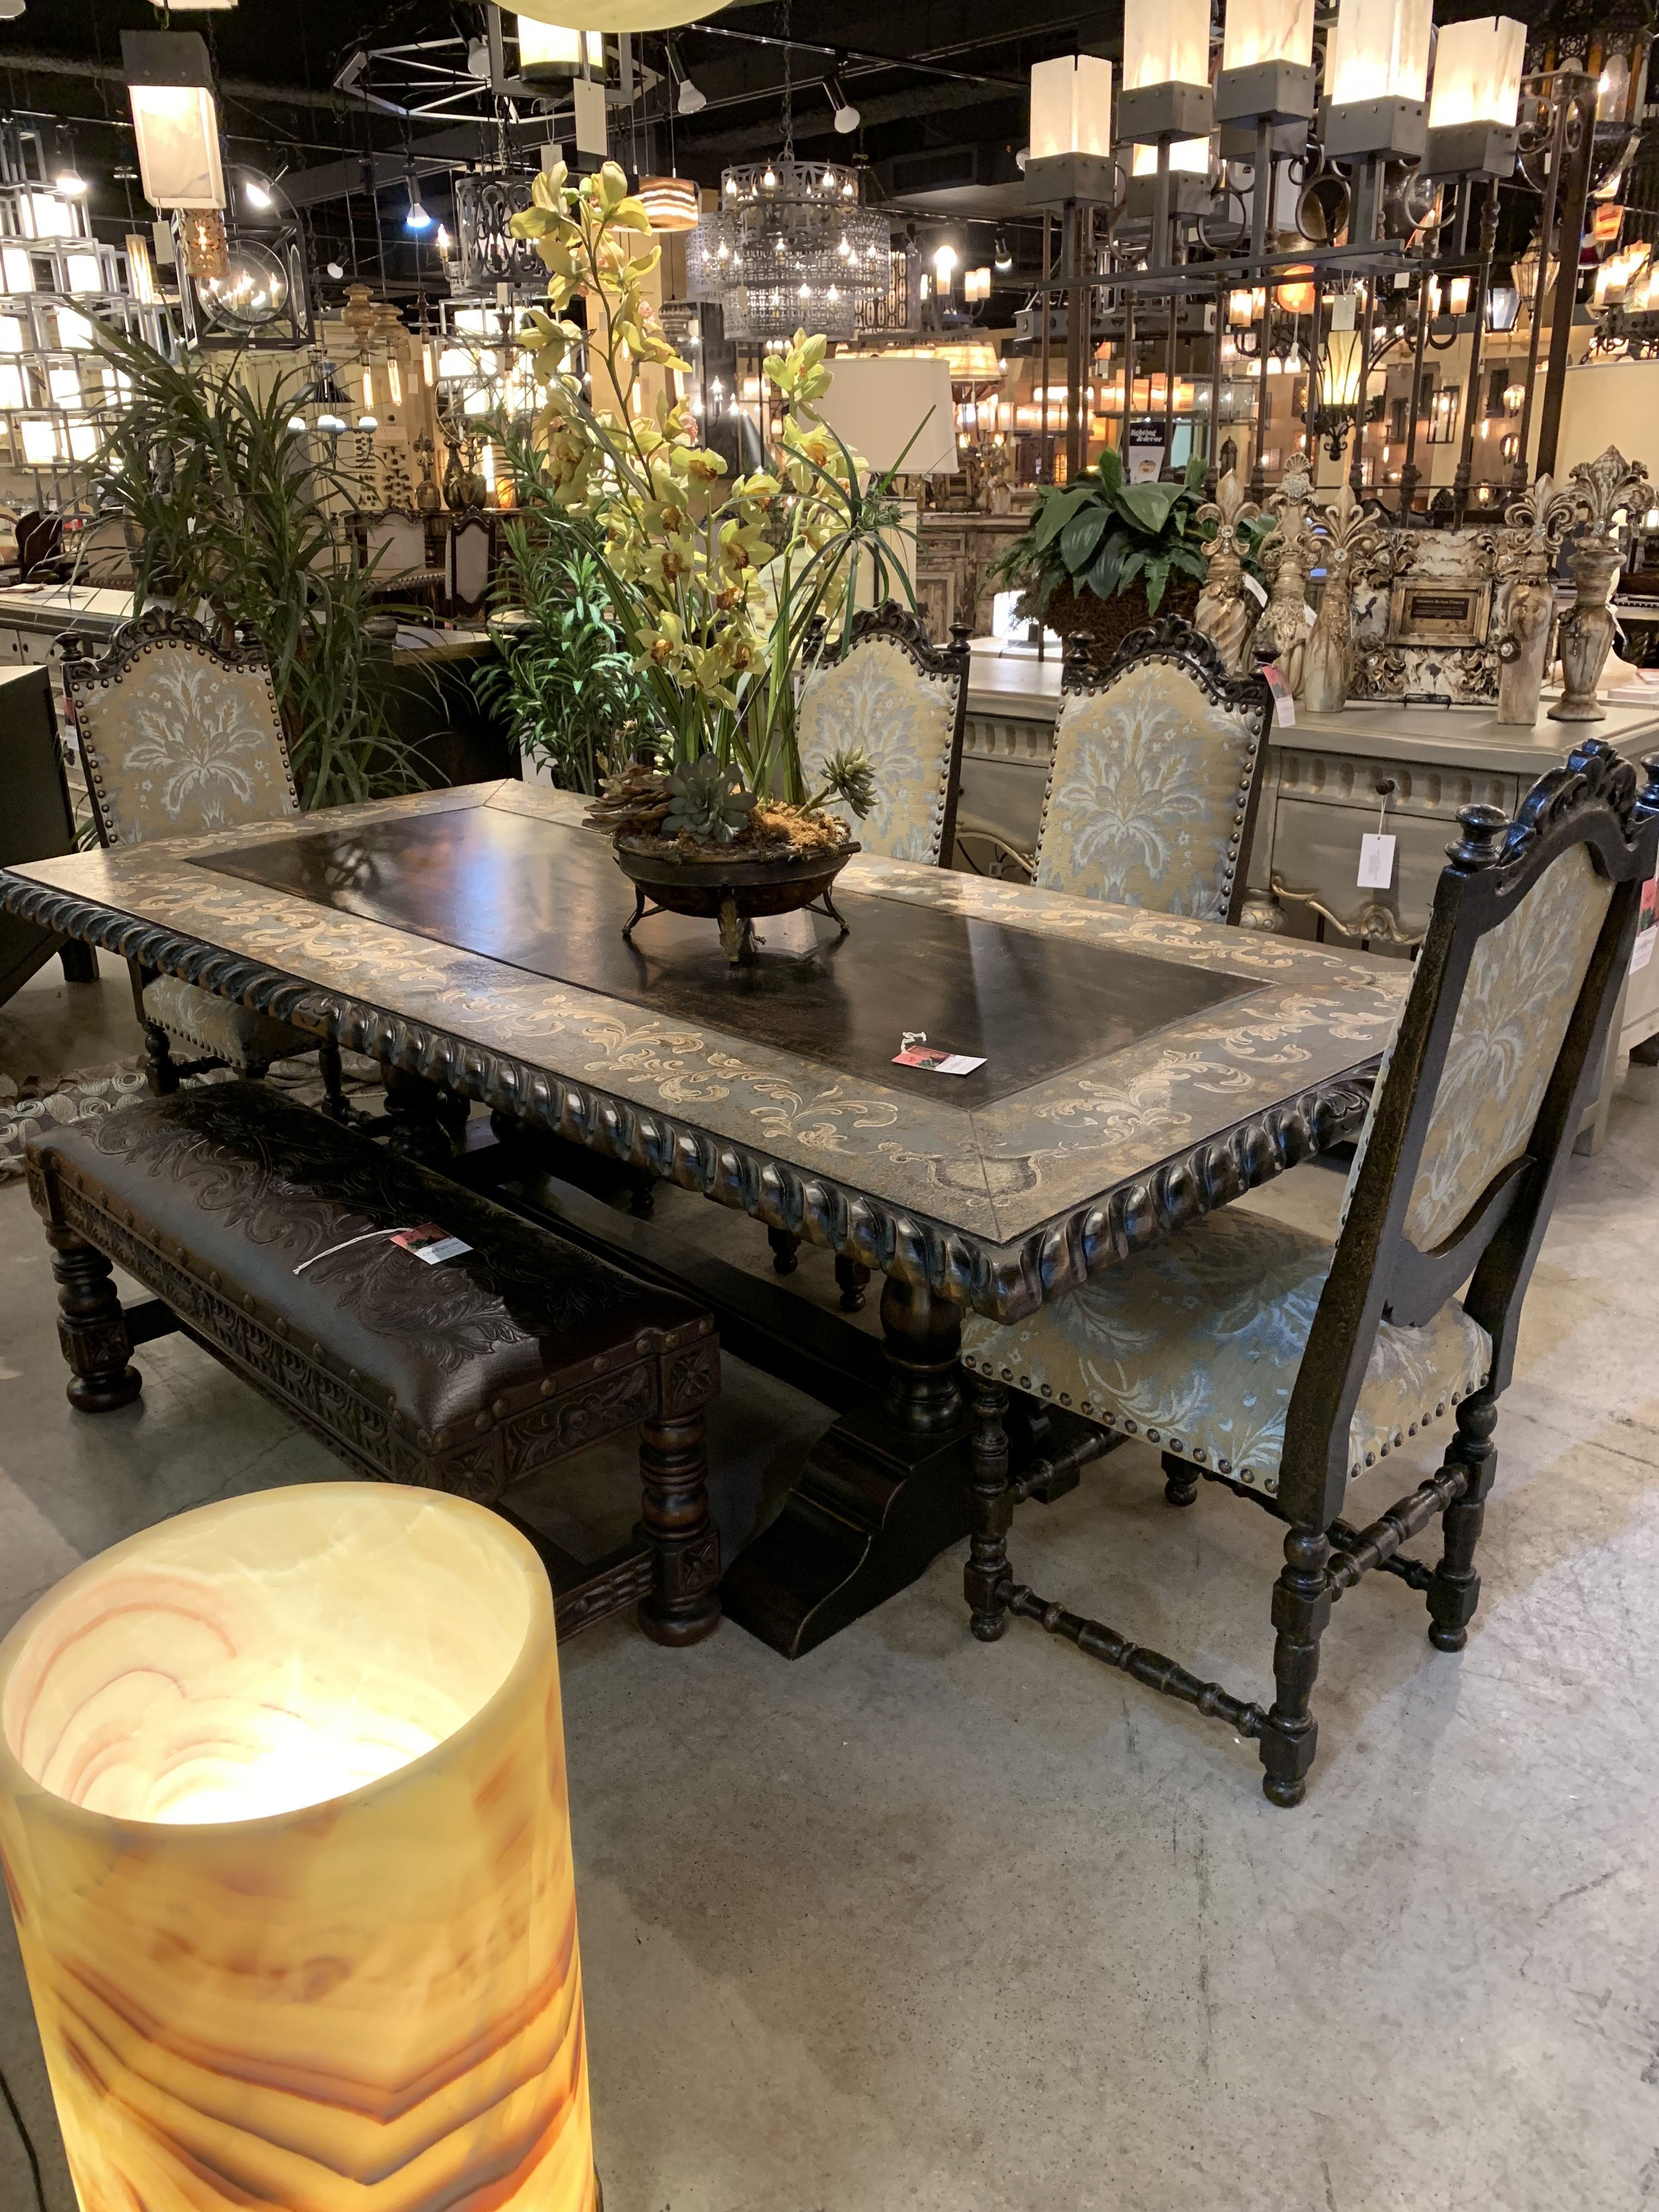 You Can Find Dining Room Furniture Living Room Furniture And More We Have A Wide Selection Of Styles Fr Tuscan Furniture Tuscan Style Modern Rustic Furniture #tuscany #furniture #living #room